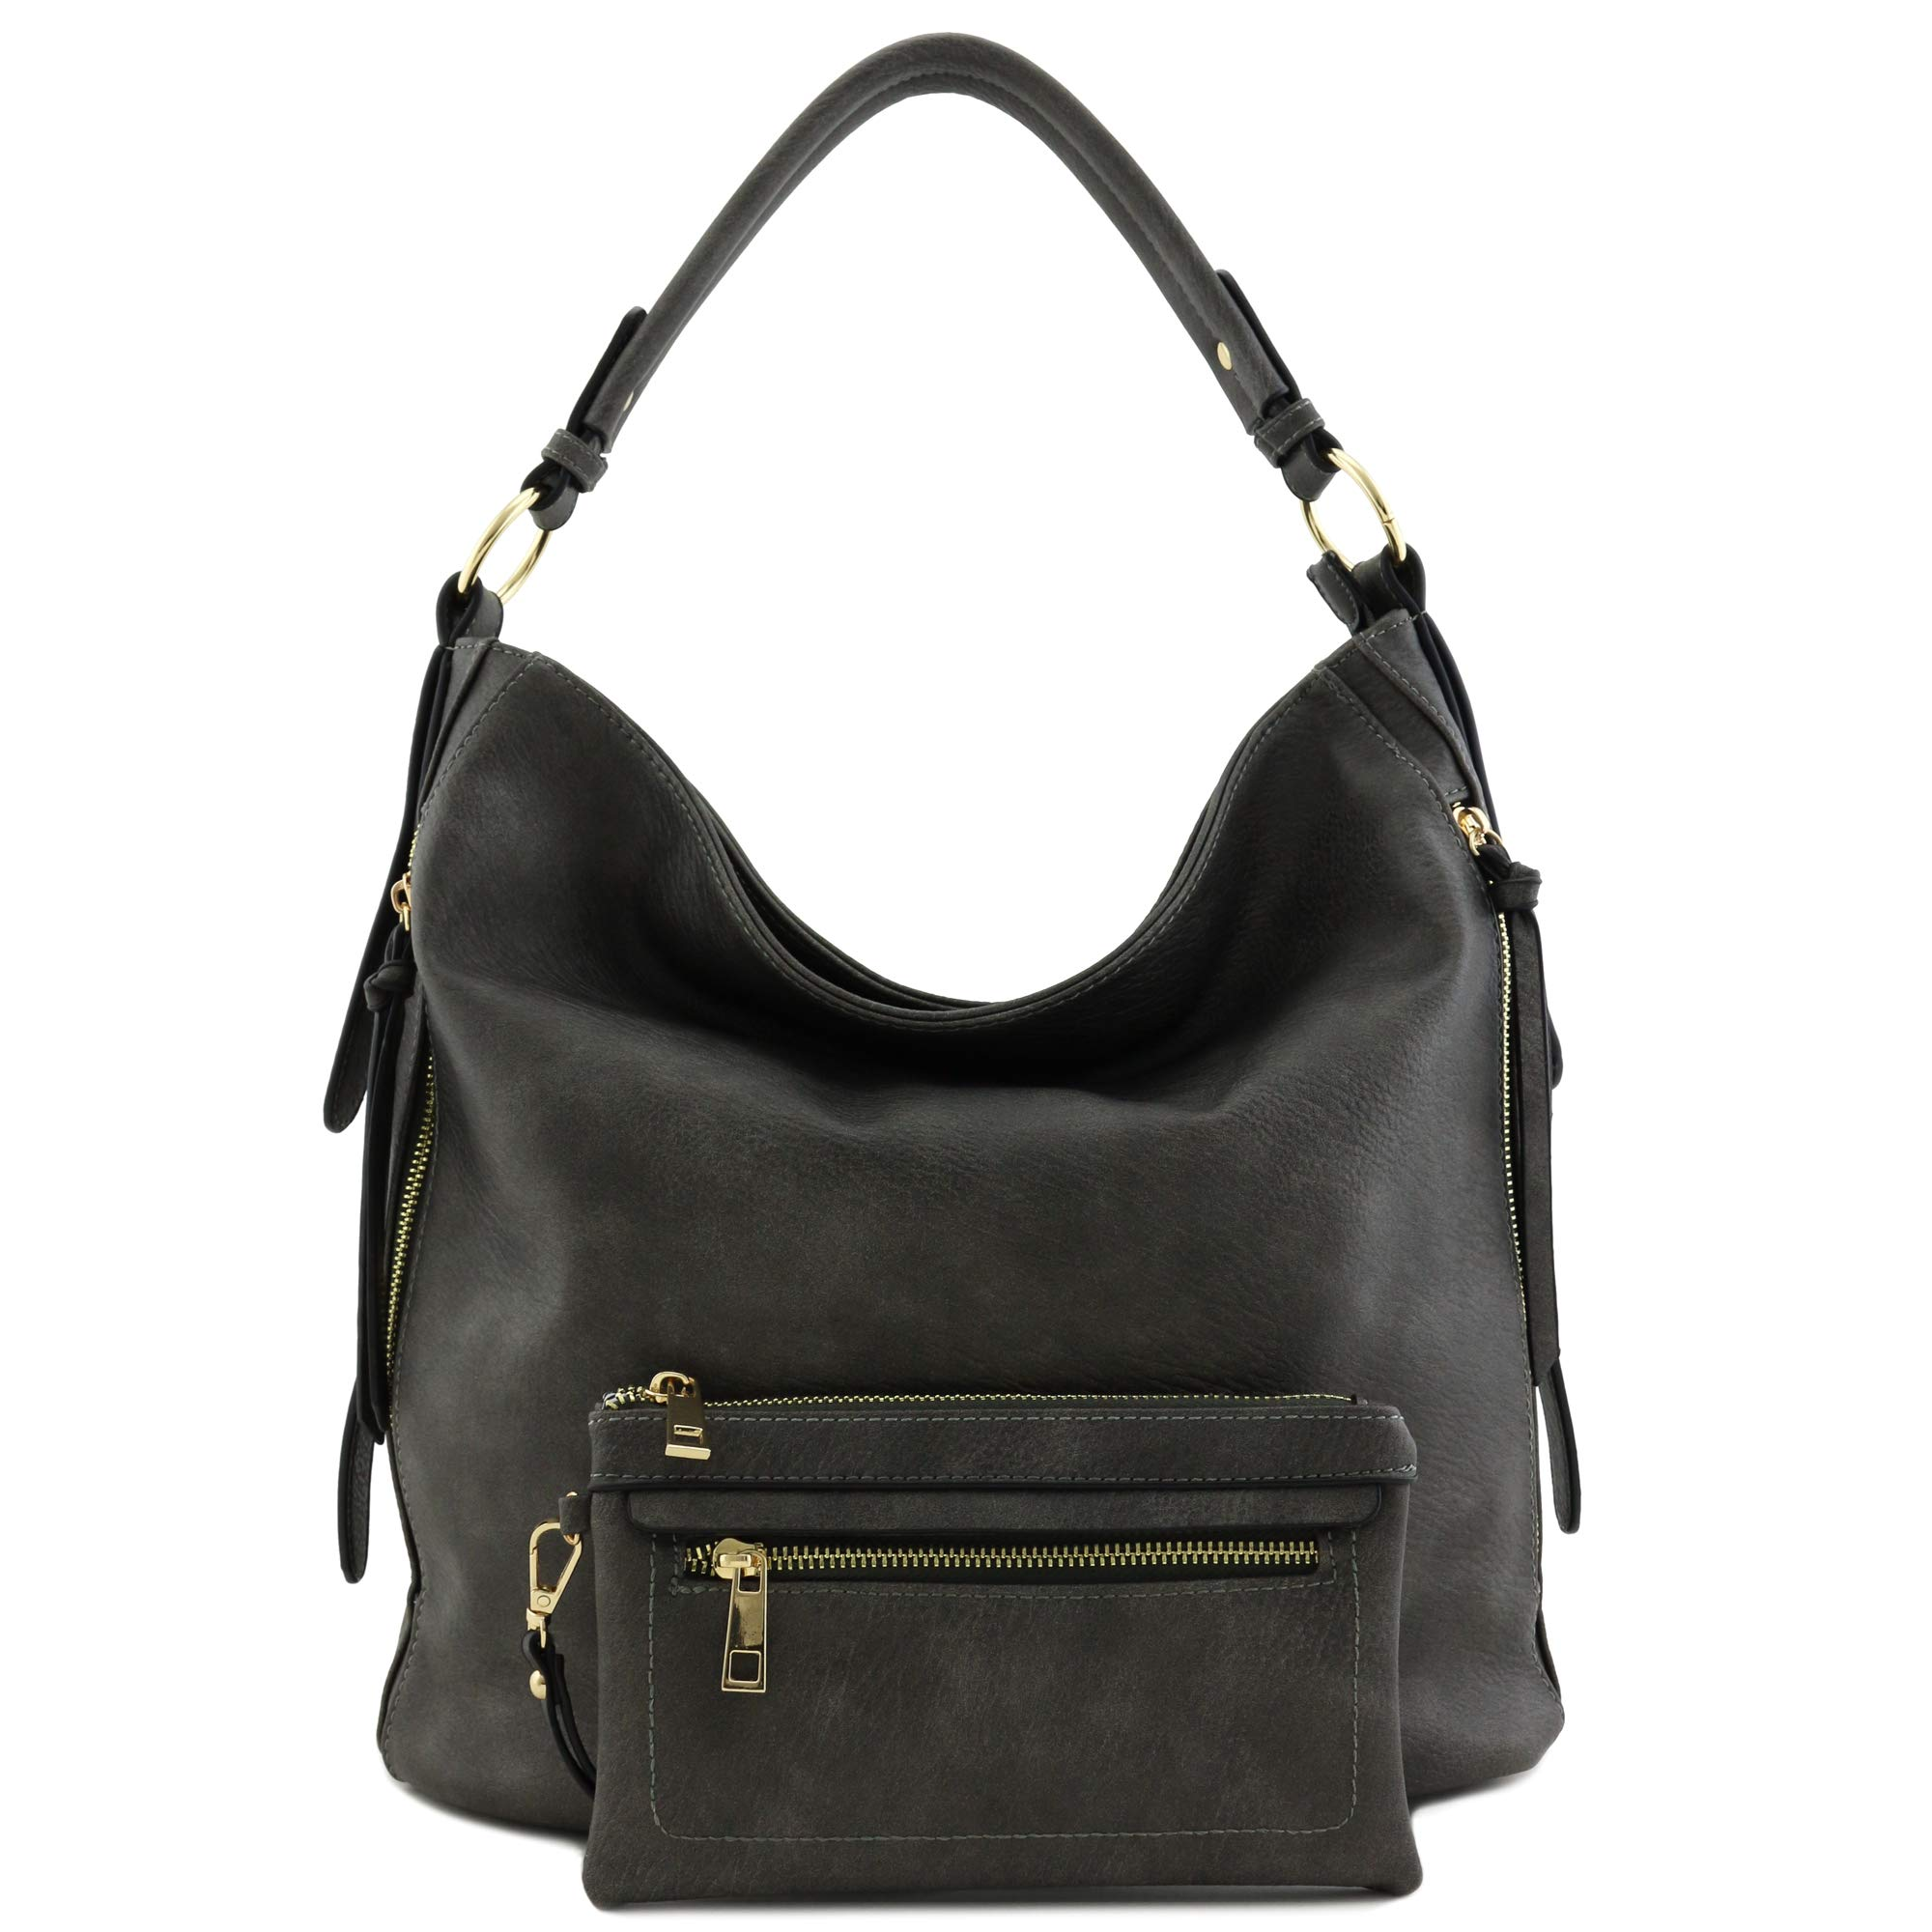 2pc Set Faux Leather Large Hobo Bag with Pouch Purse Charcoal Grey